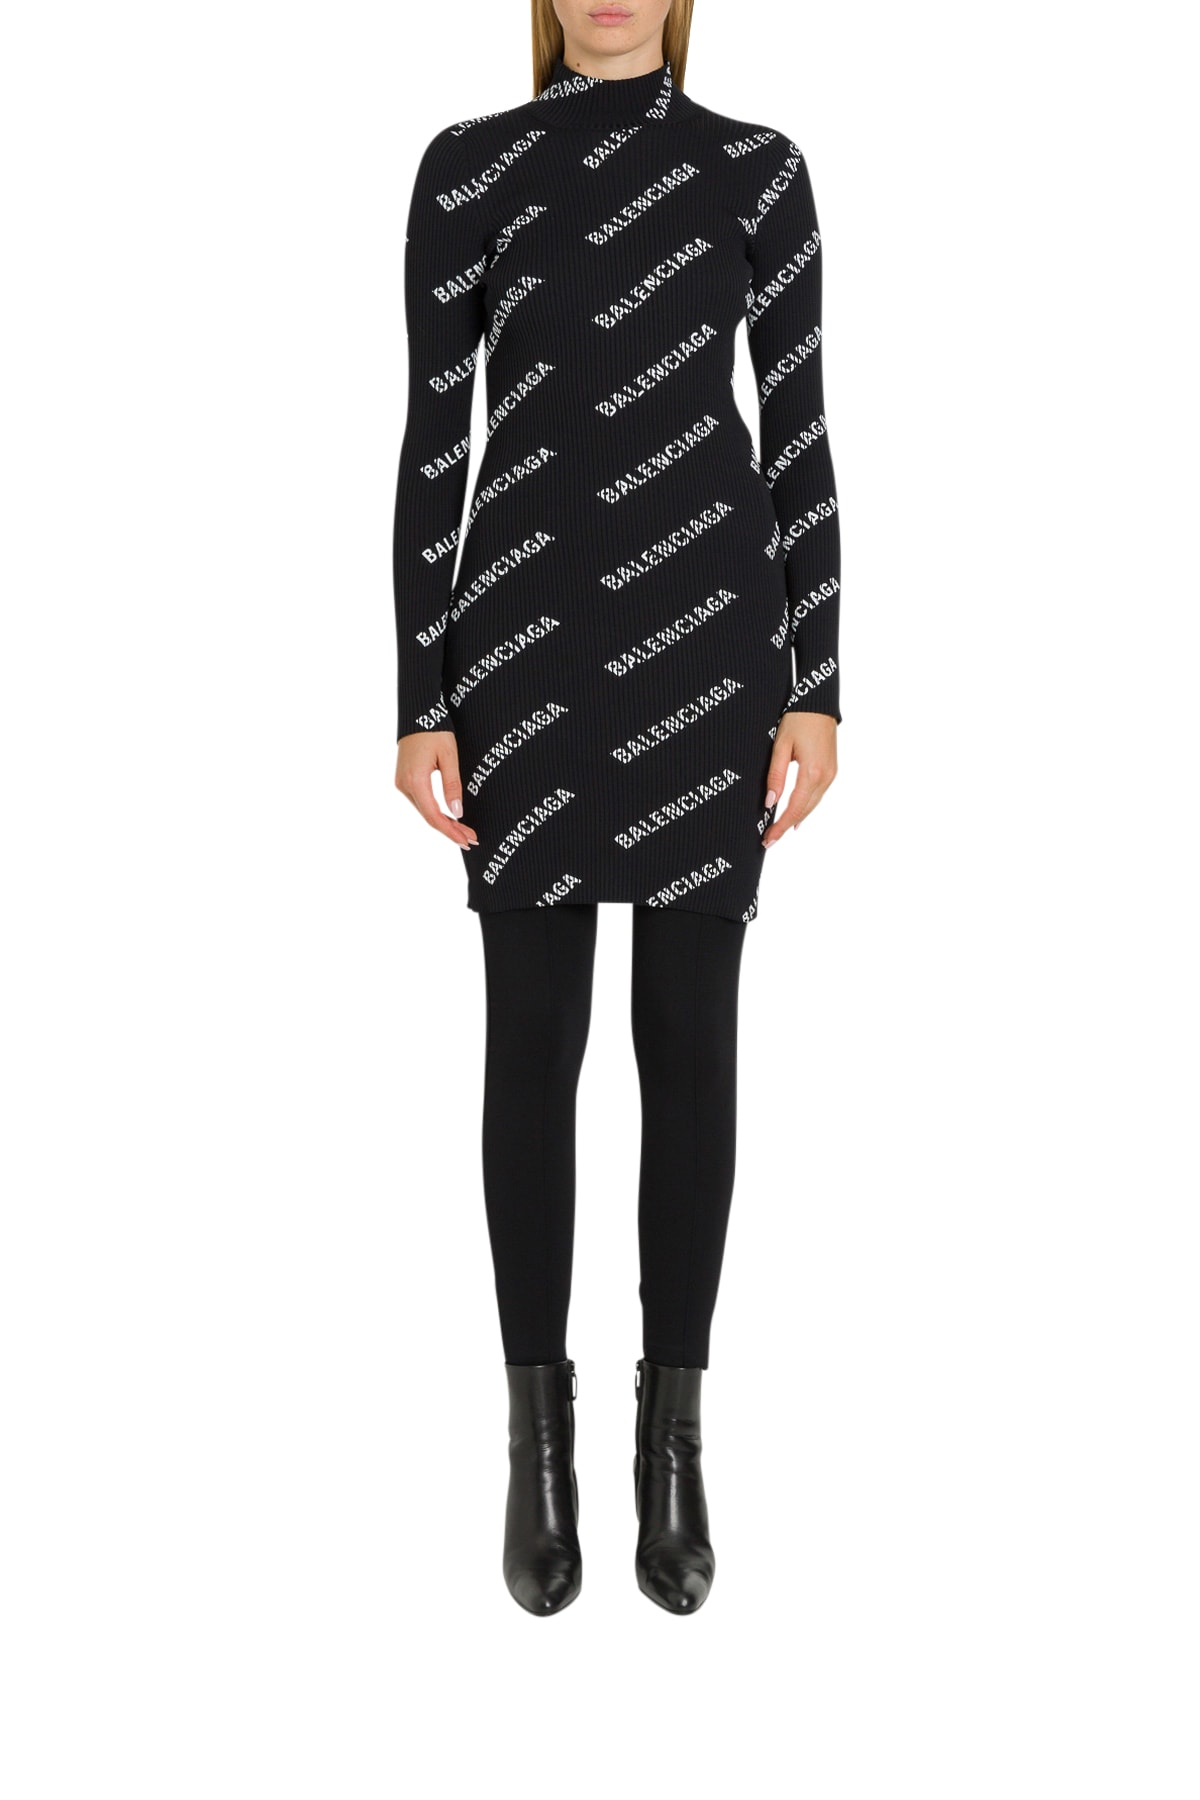 Balenciaga Allover Logo Ribbed Knit Dress